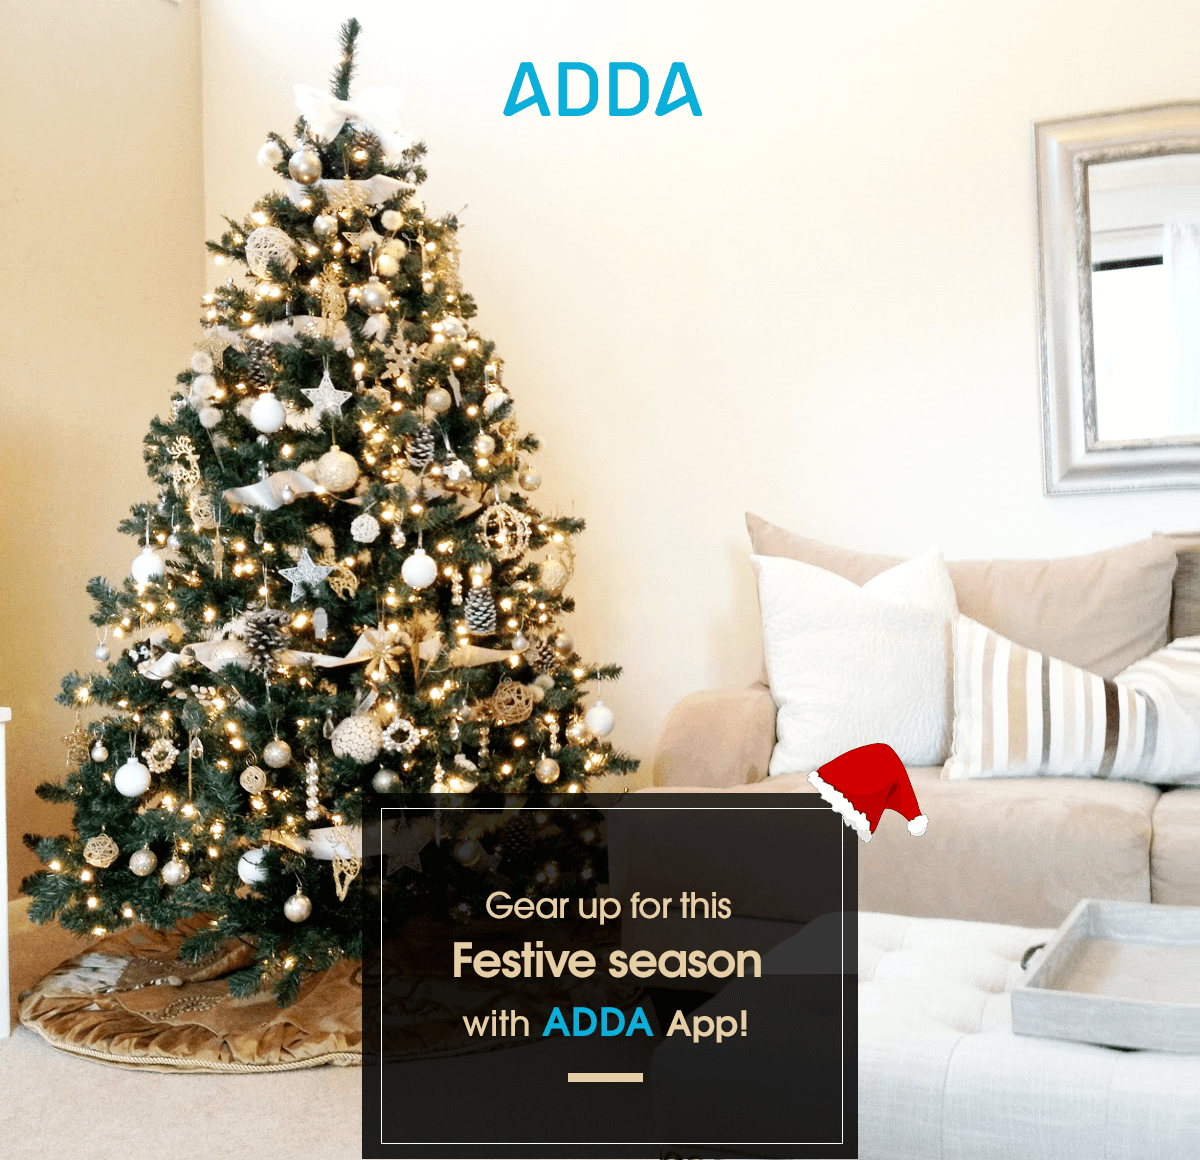 ADDA App - Christmas/New Year Genie